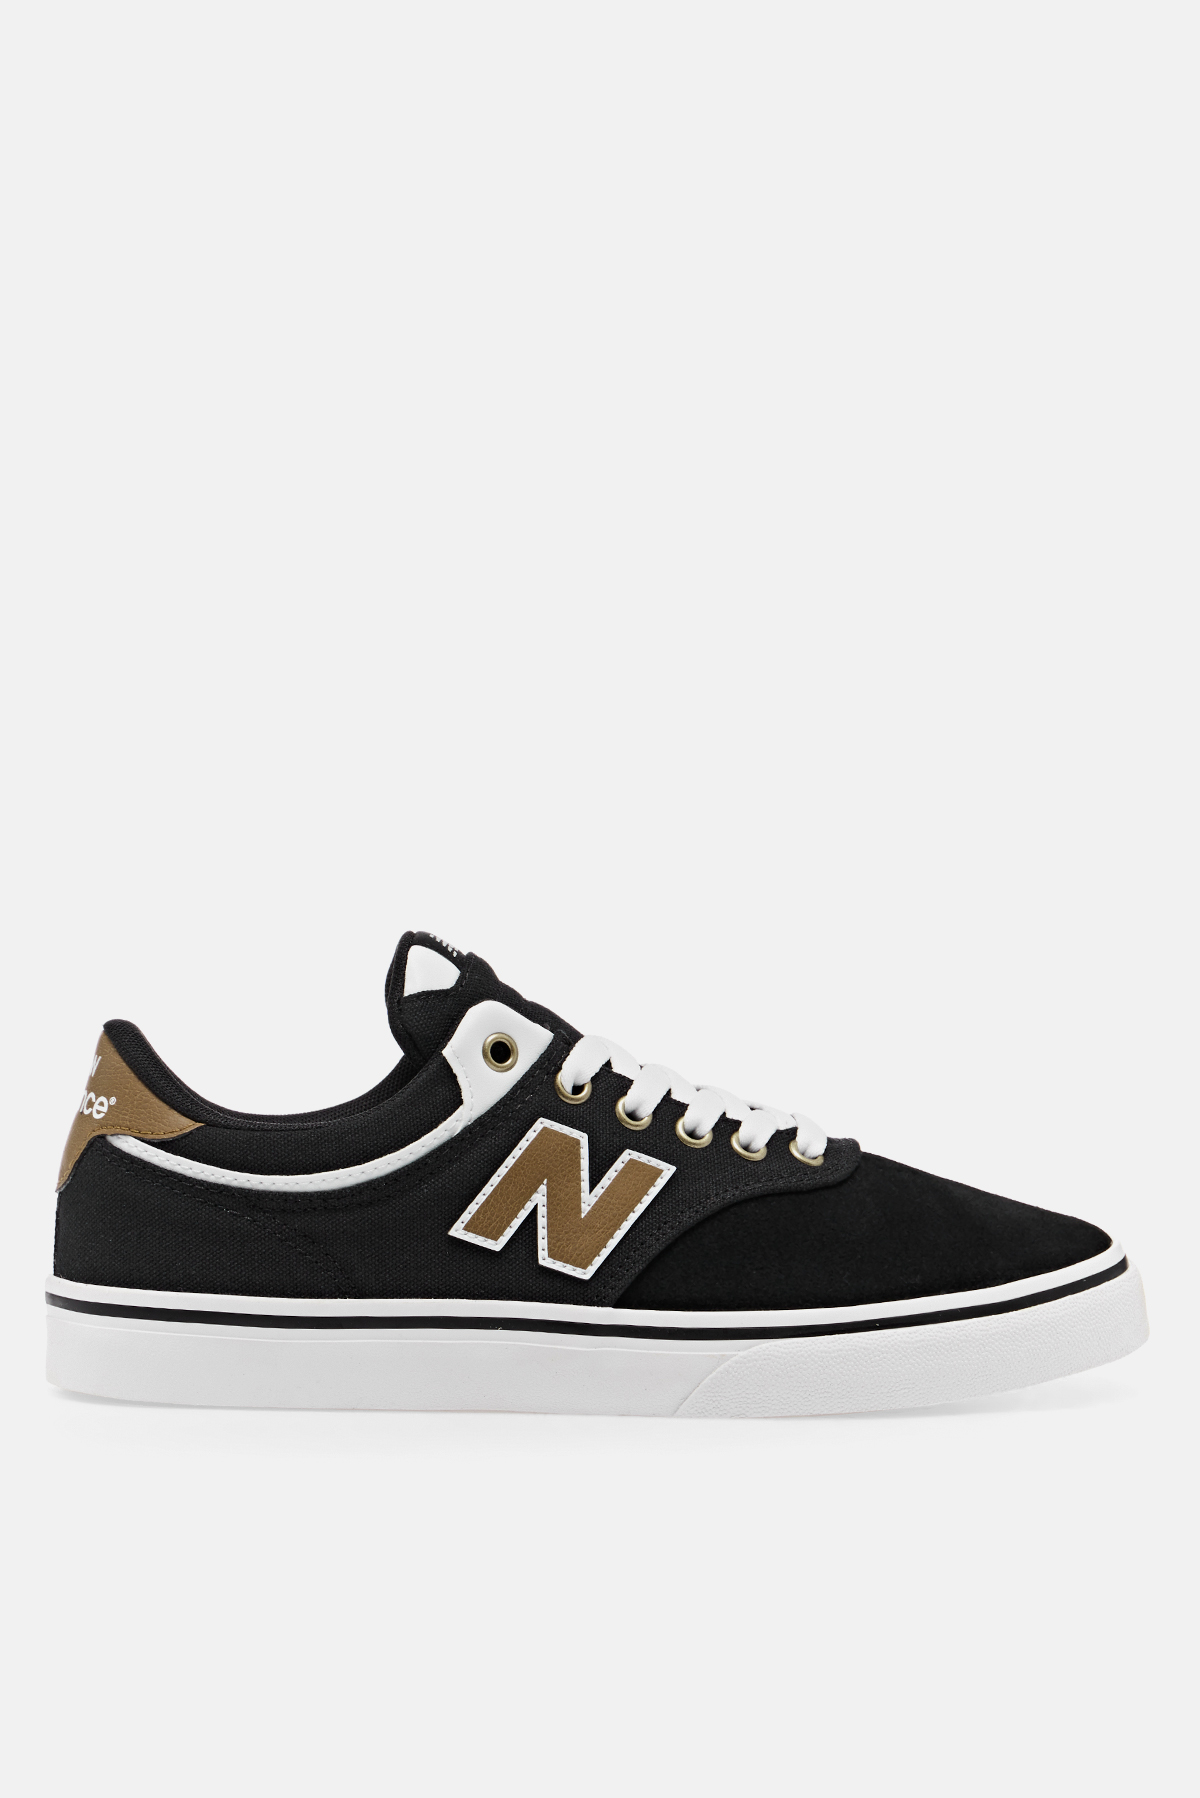 New Balance Numeric available from Priory